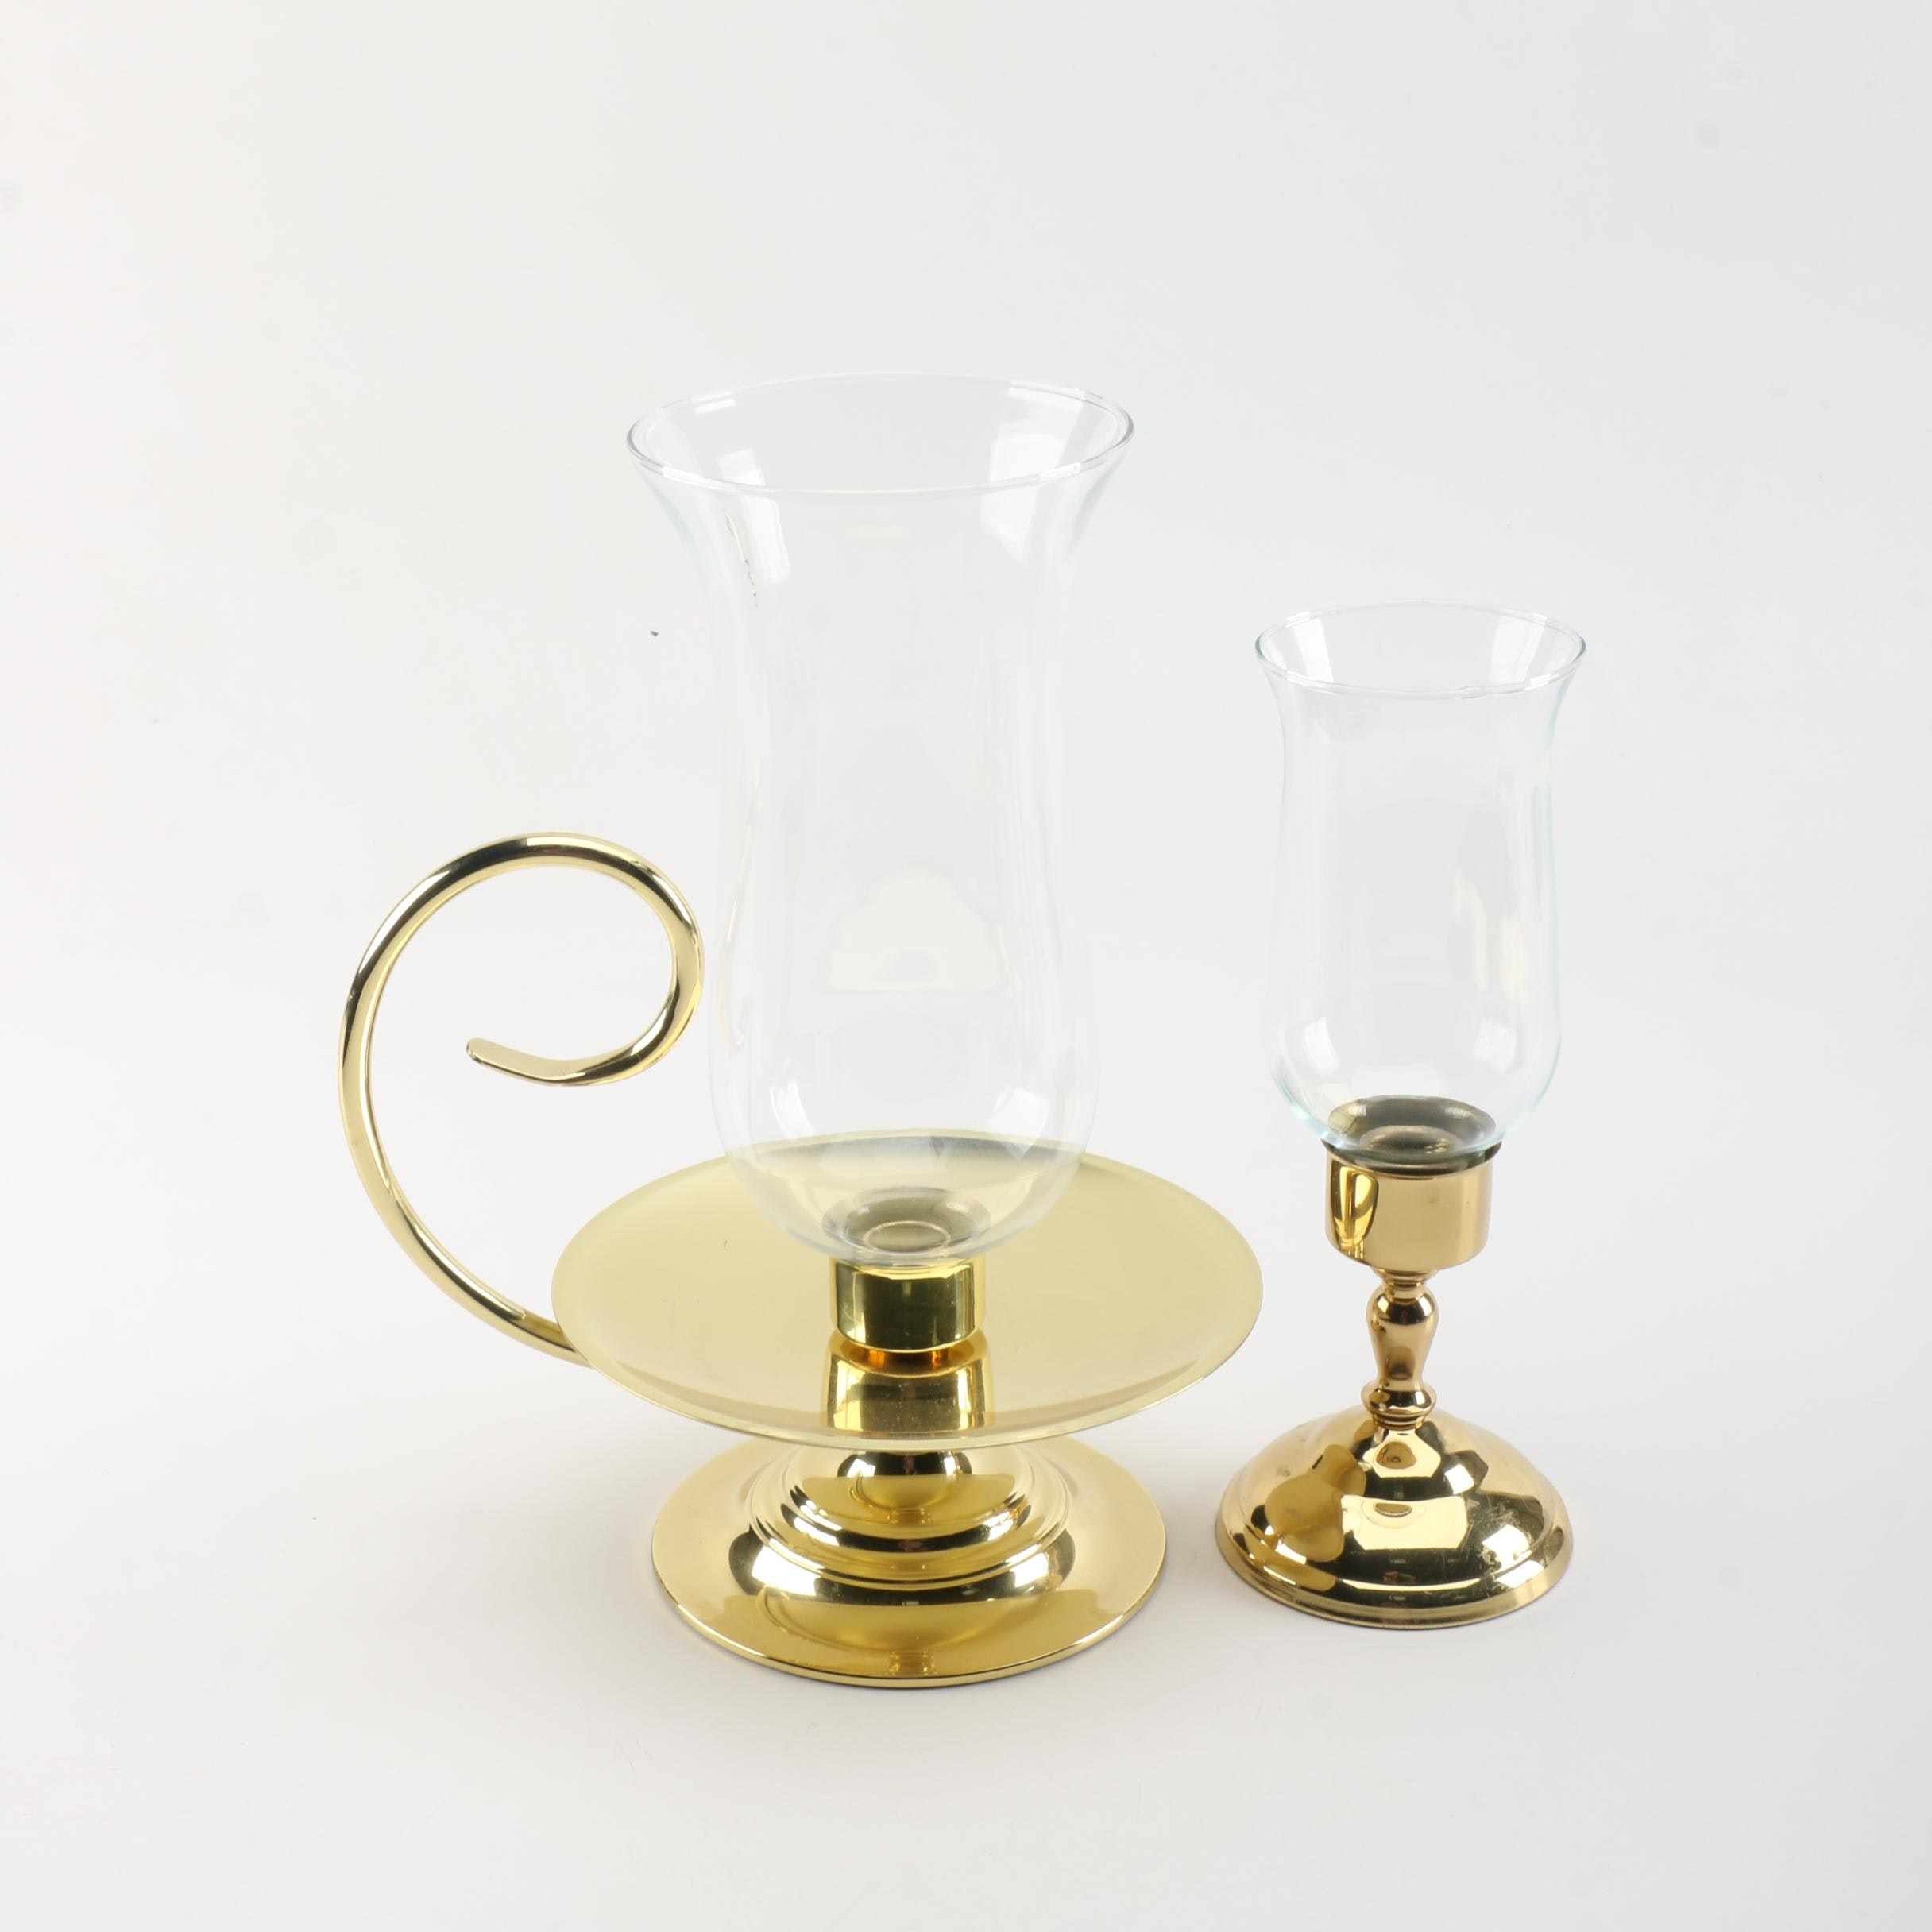 Two Brass and Glass Hurricane Lamps